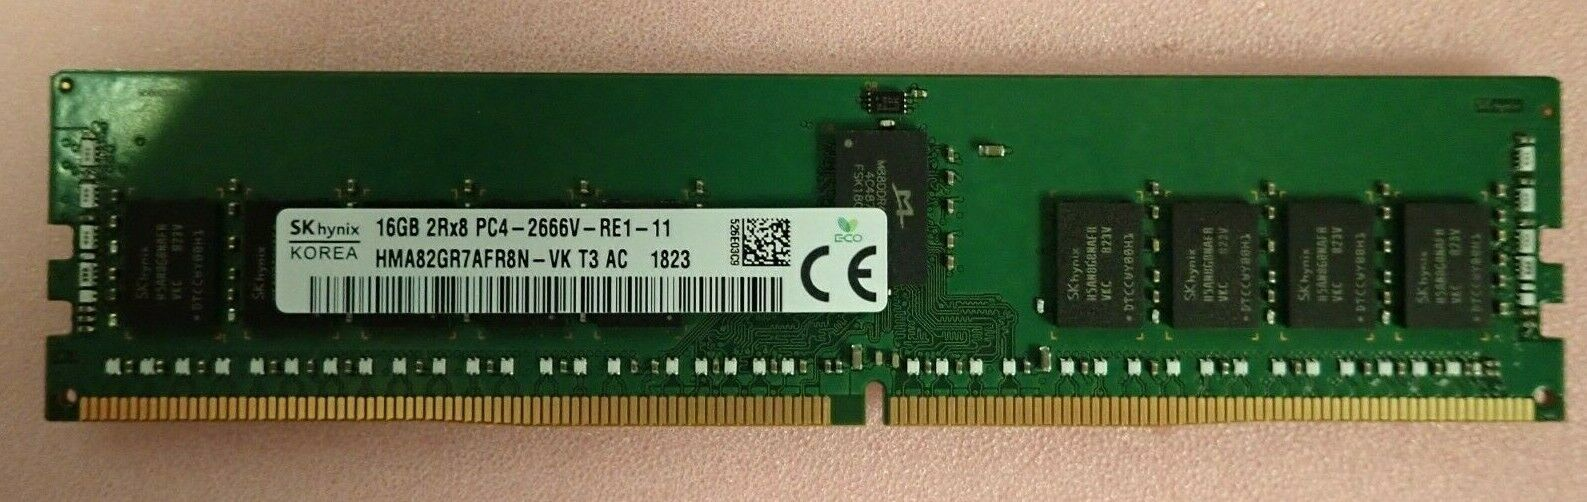 16GB Memory for Wiwynn SV7220G2-S Open Compute Server DDR4 PC4-2400 Registered DIMM PARTS-QUICK Brand